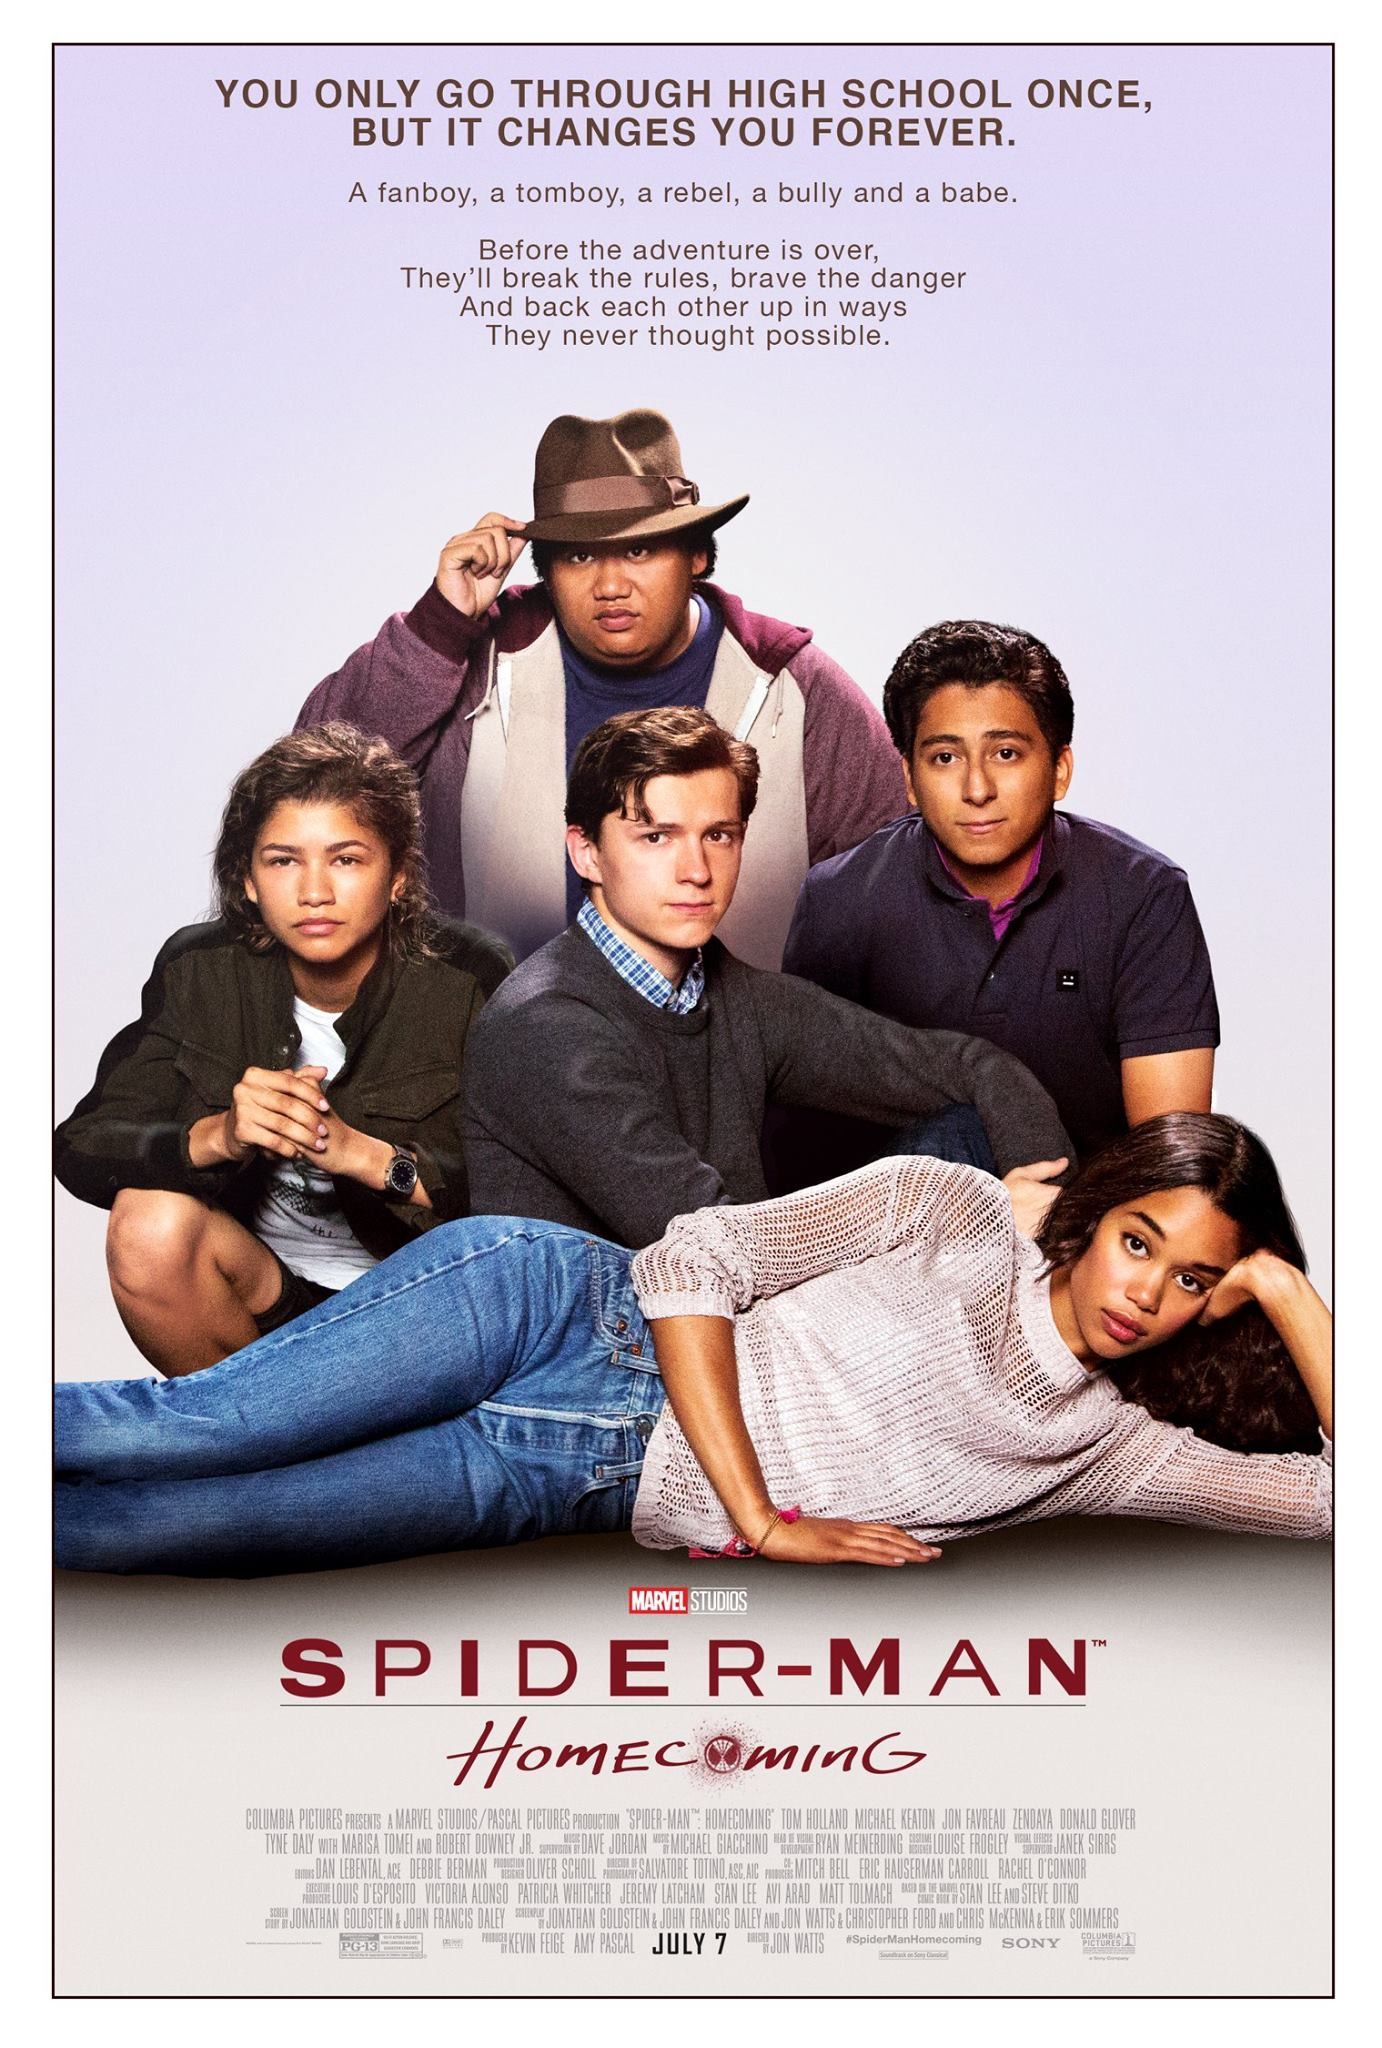 Spider-Man: Homecoming parody poster of The Breakfast Club | Movies